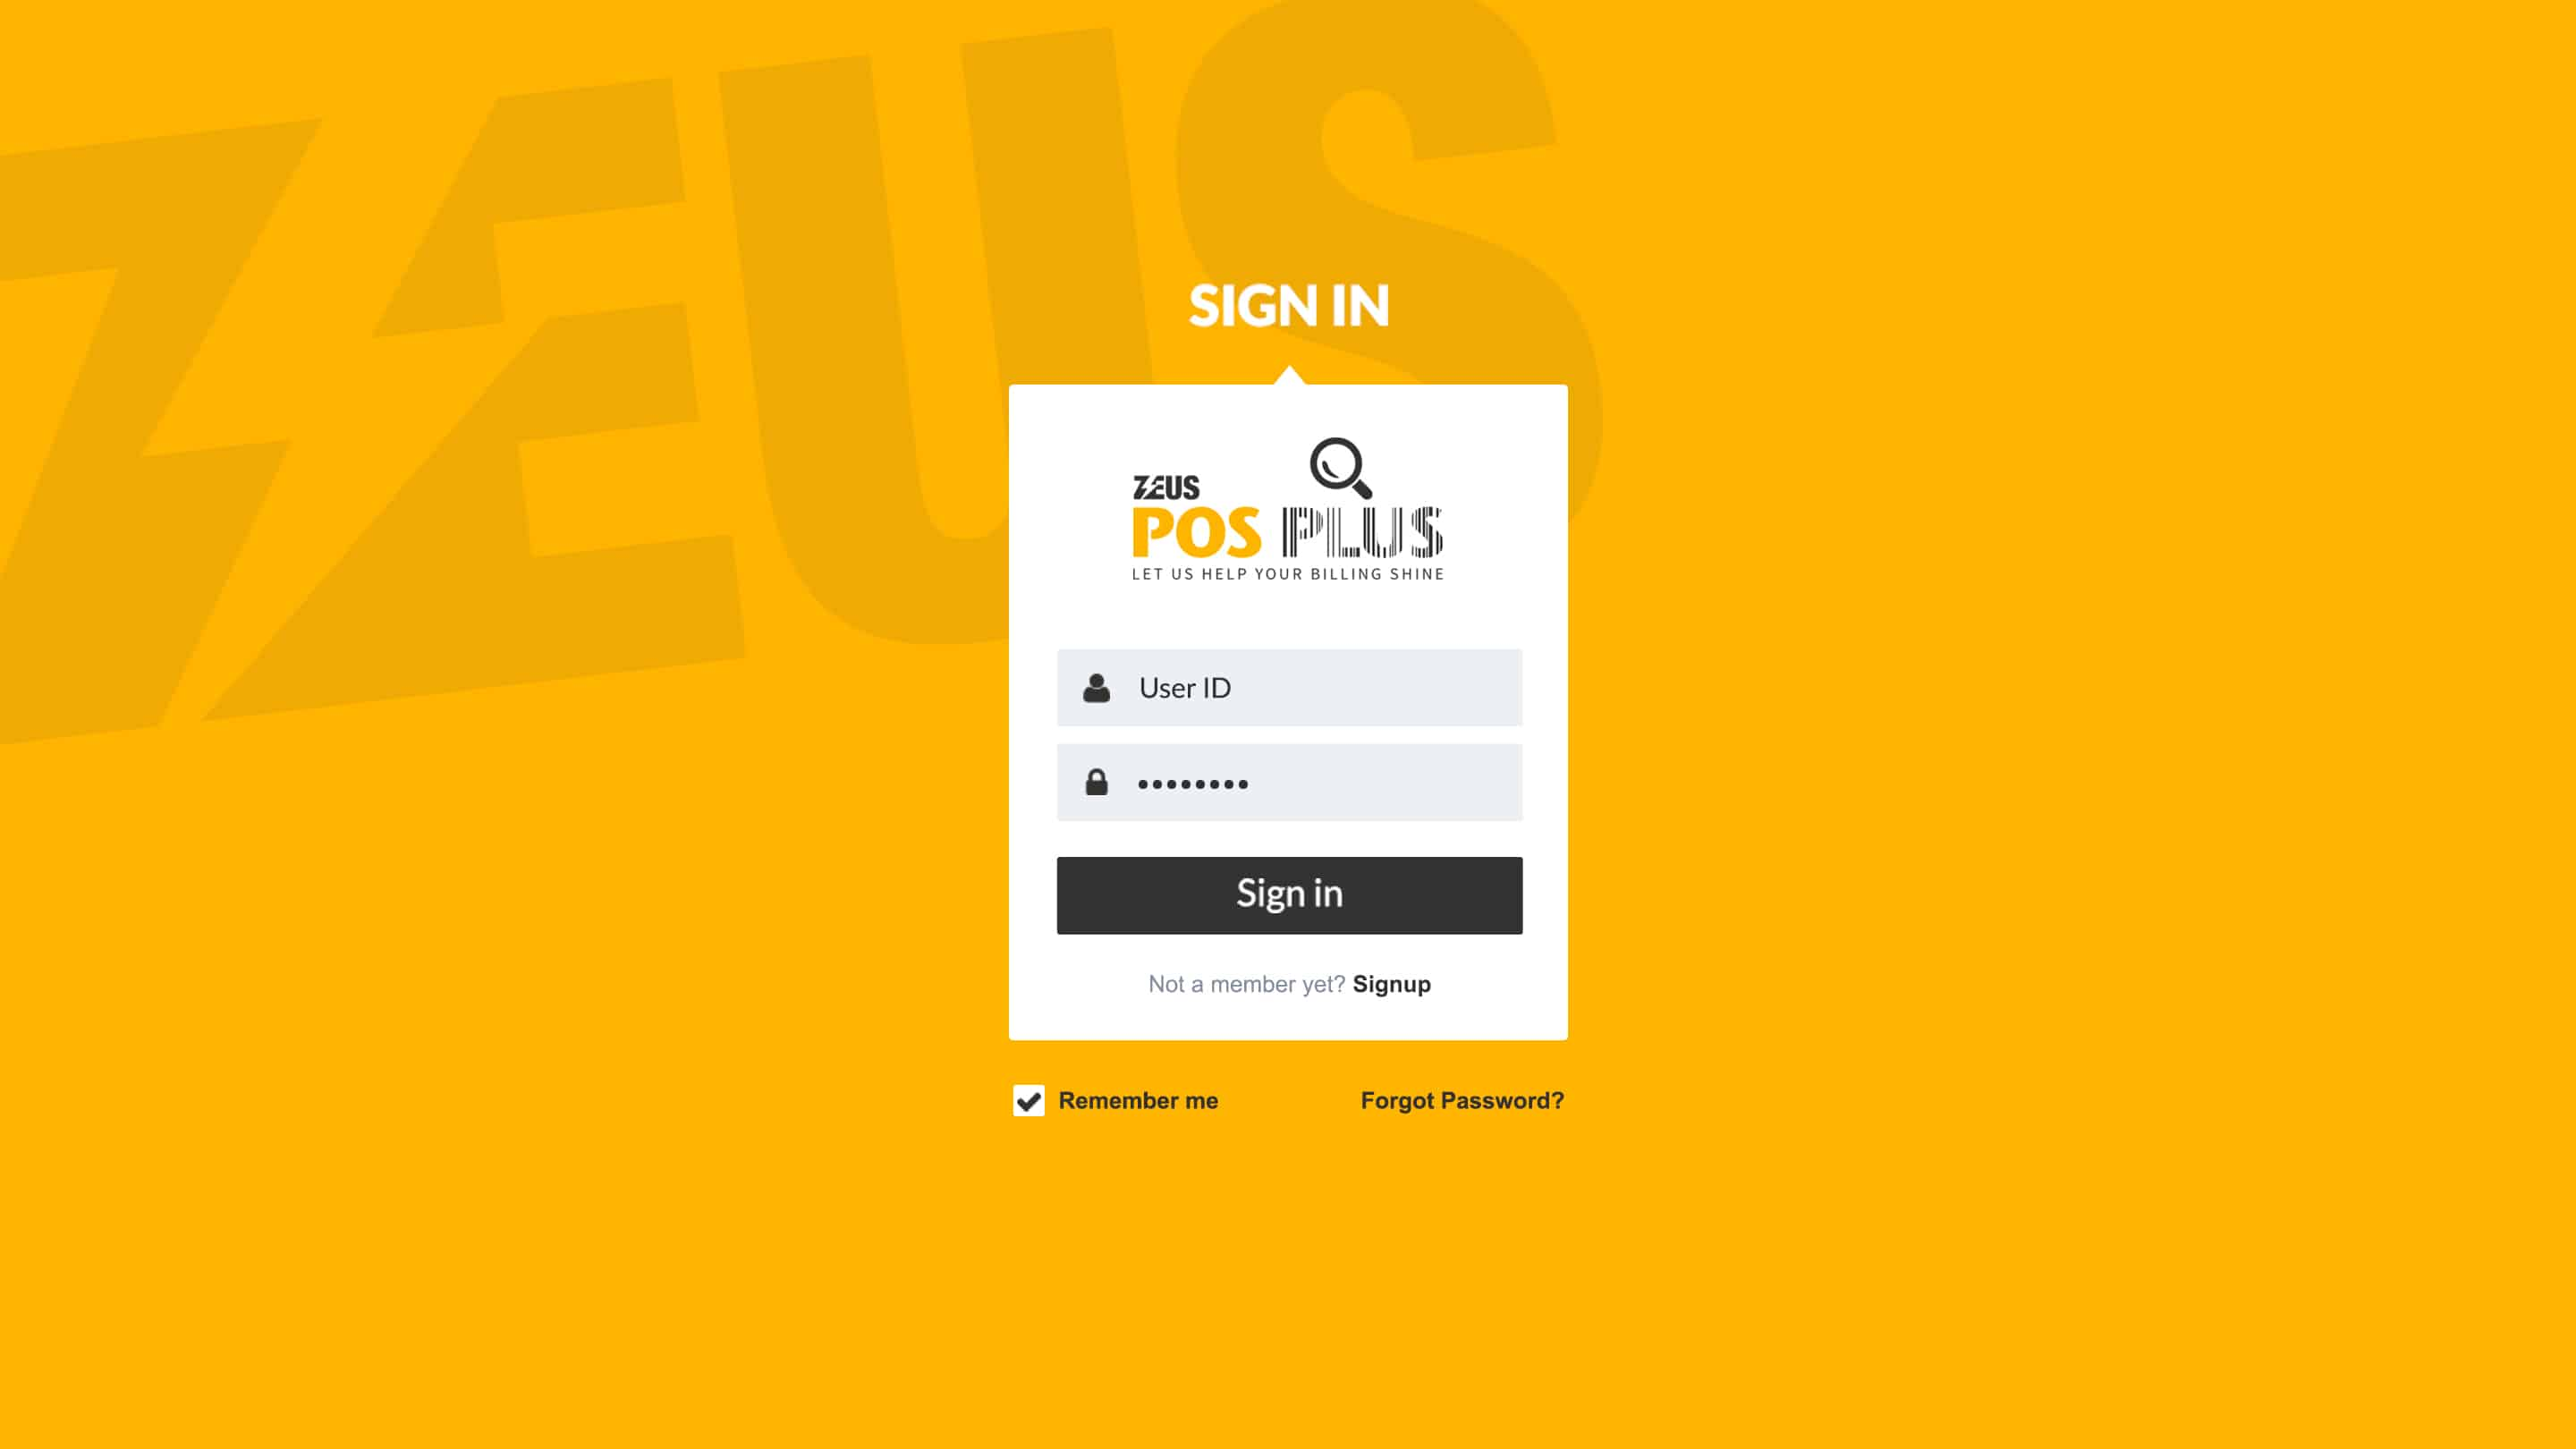 Zeus POS Plus – Login